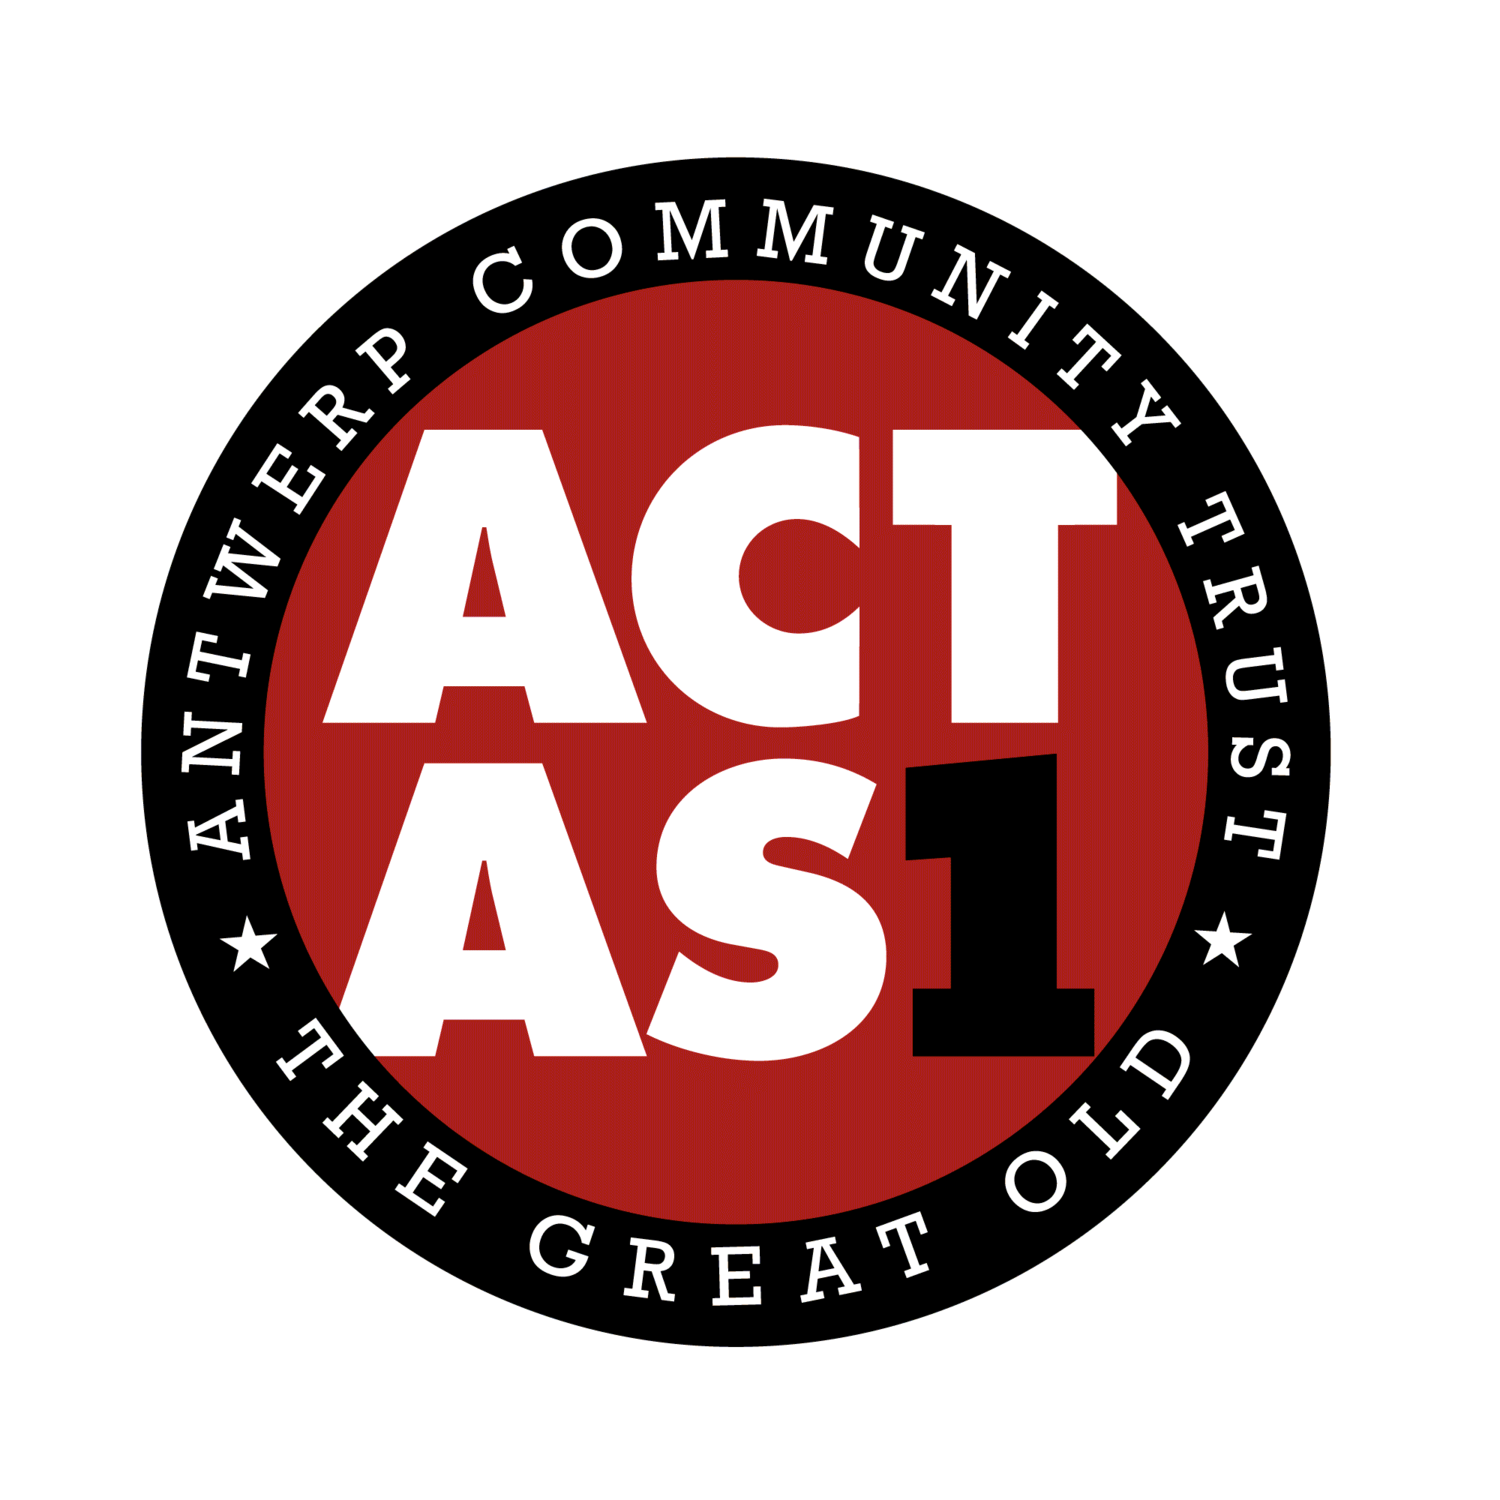 ACT as ONE